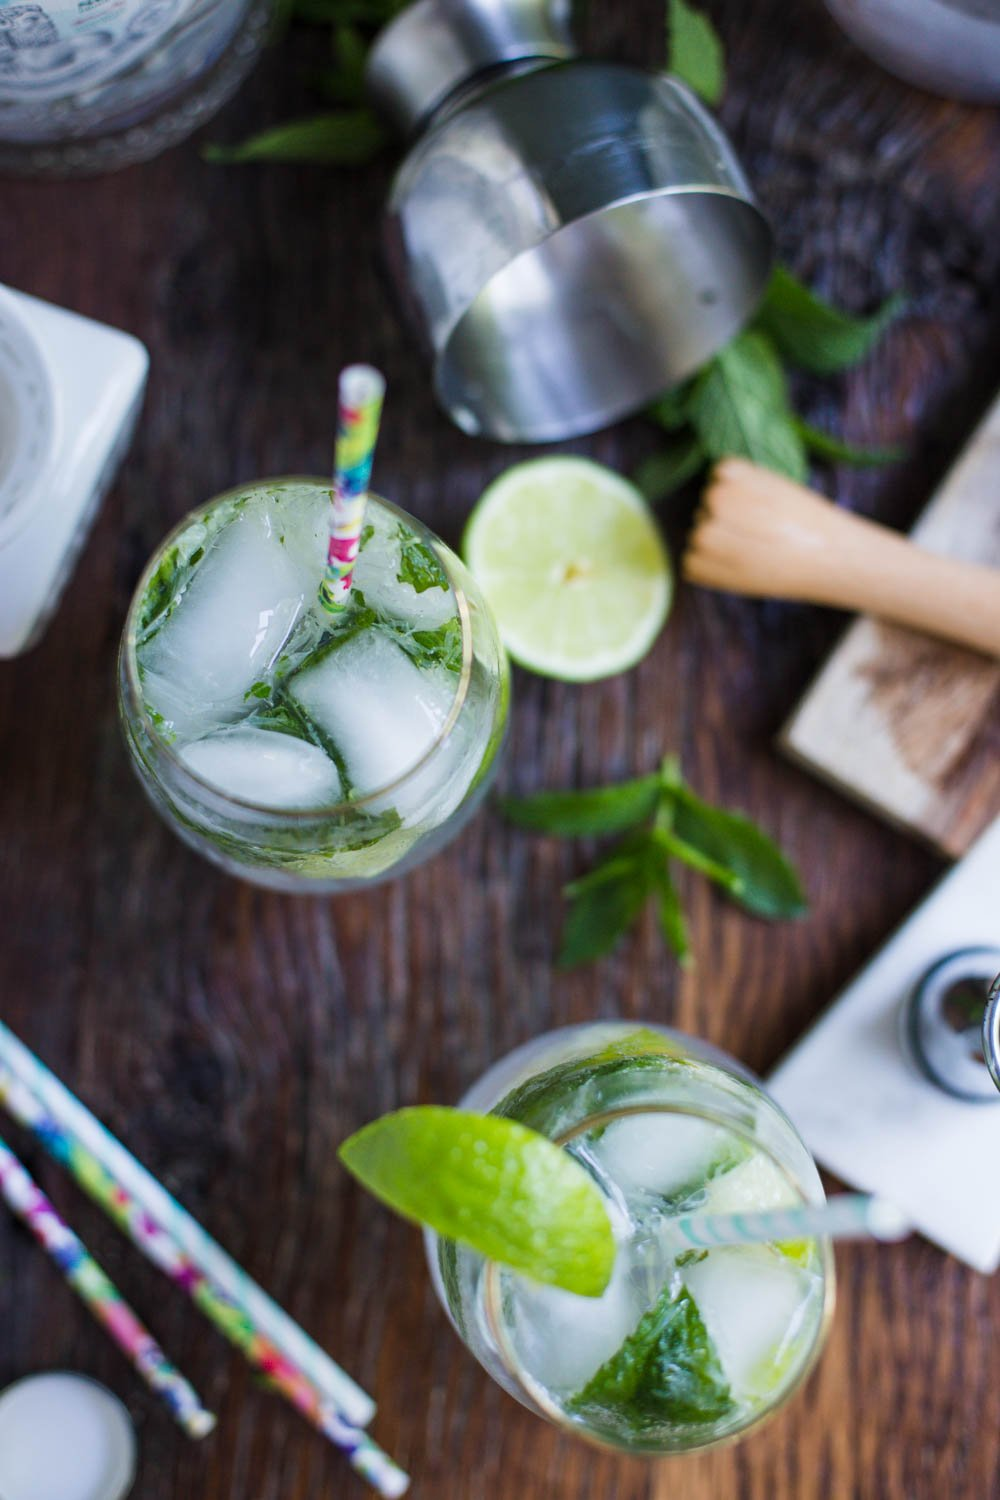 Mojito made with stevia extract